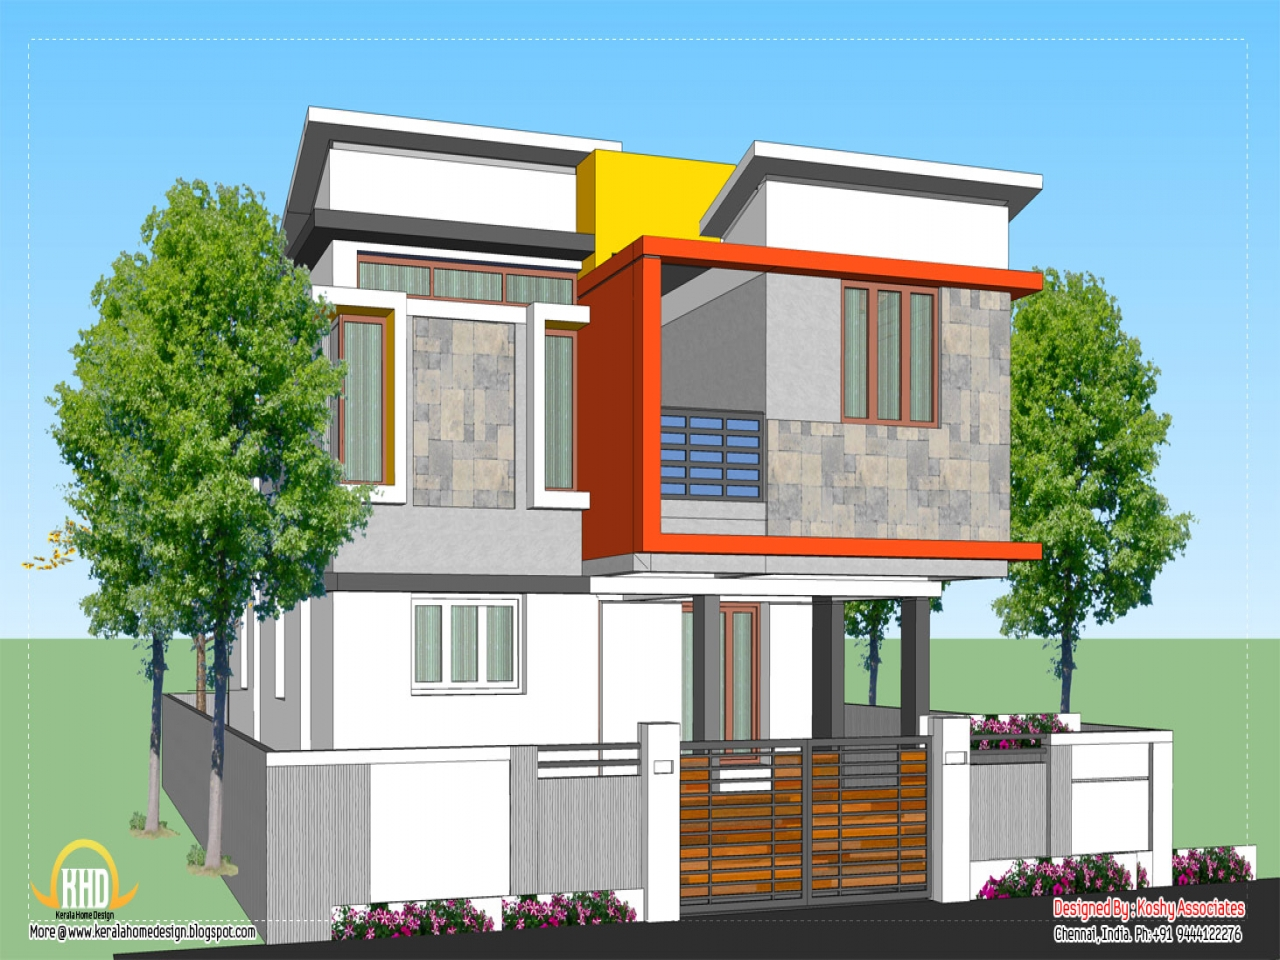 Very modern house plans modern house plans and designs for Very modern house plans